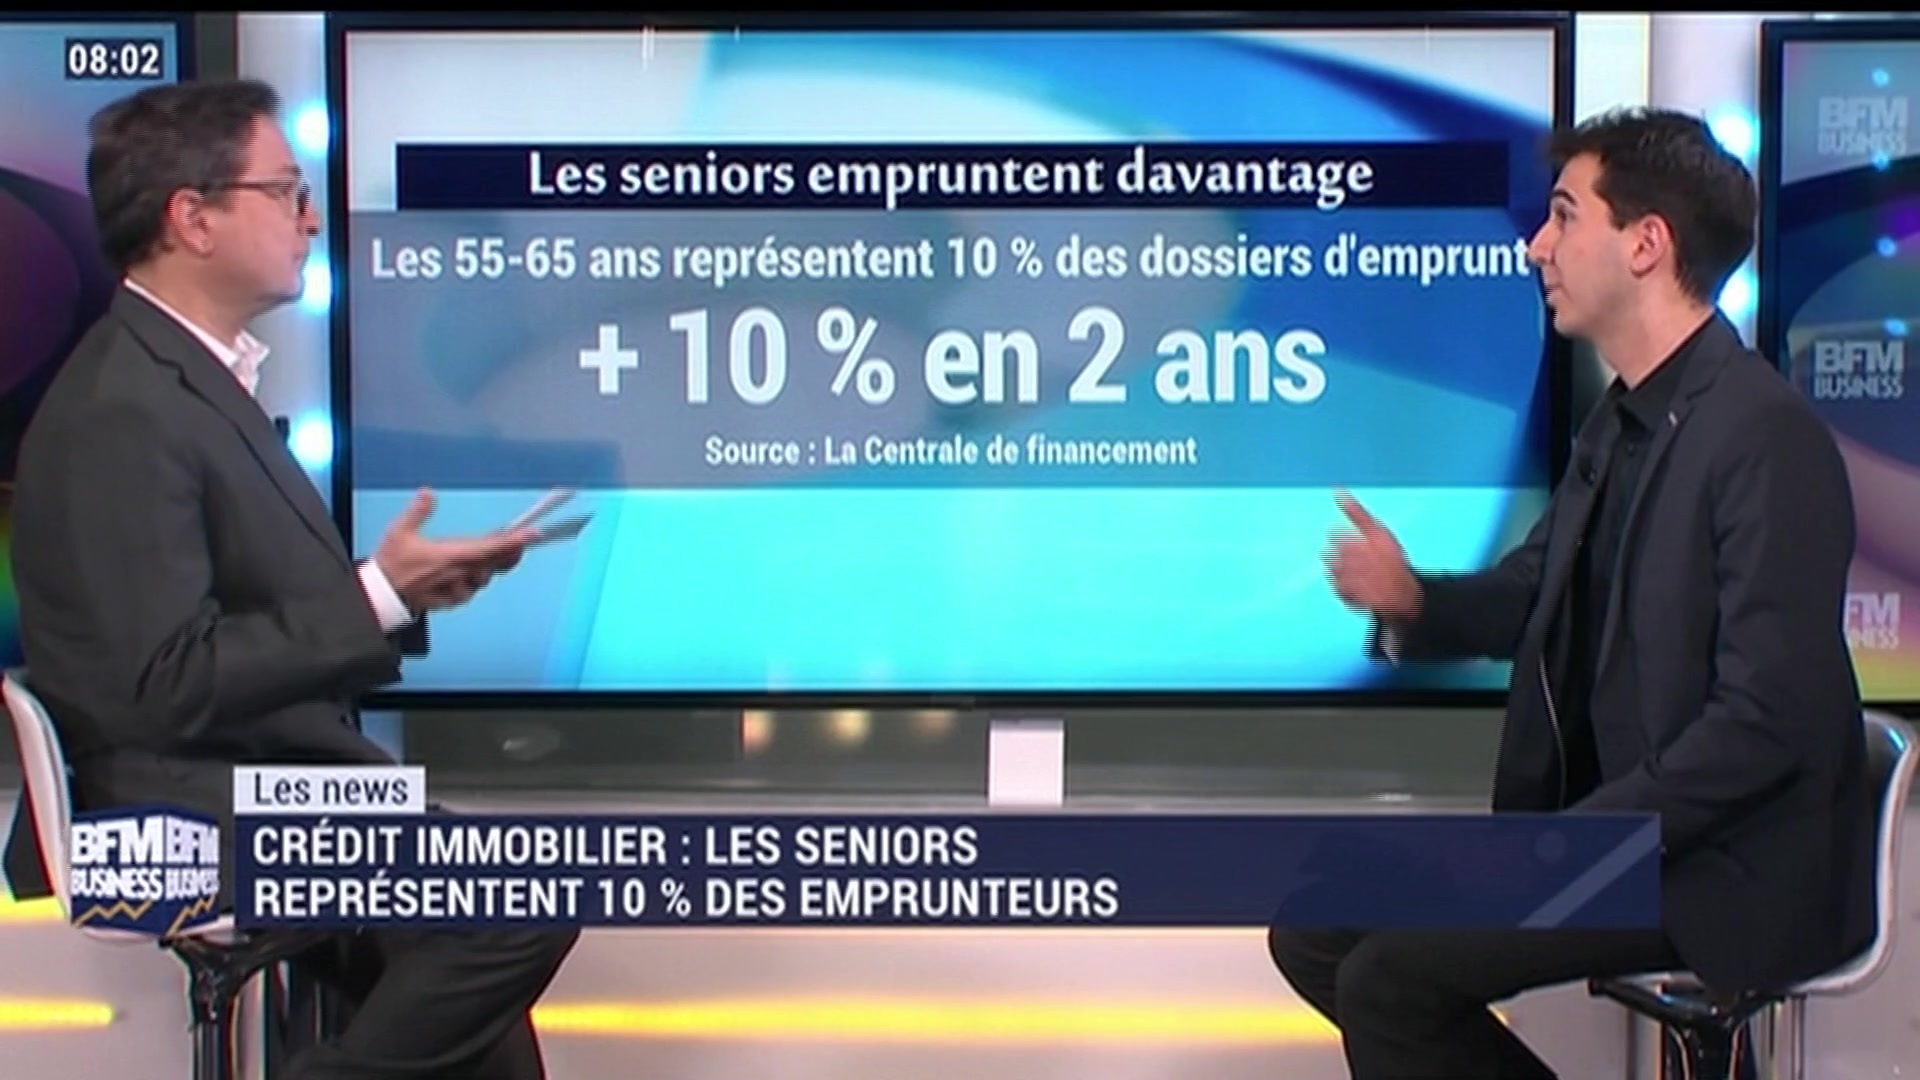 credit immobilier bfm